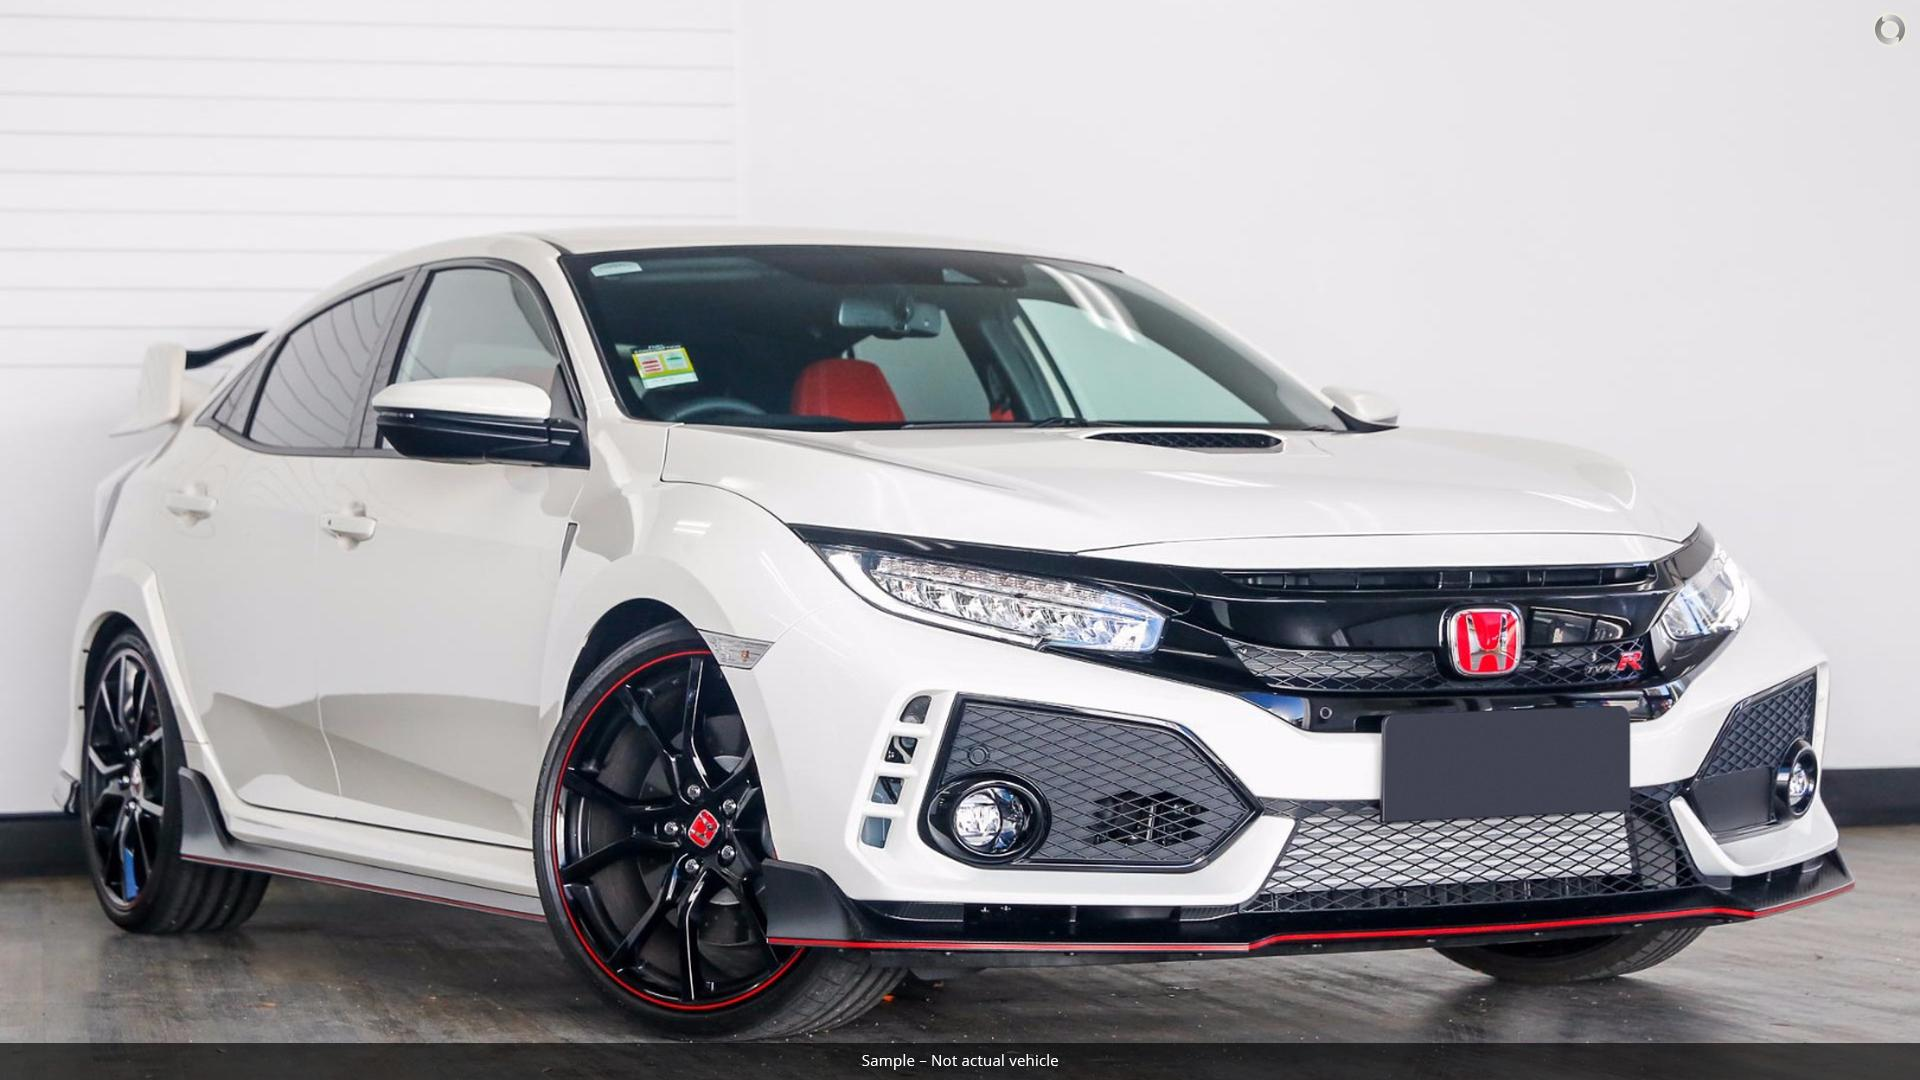 2019 Honda Civic Type R 10th Gen